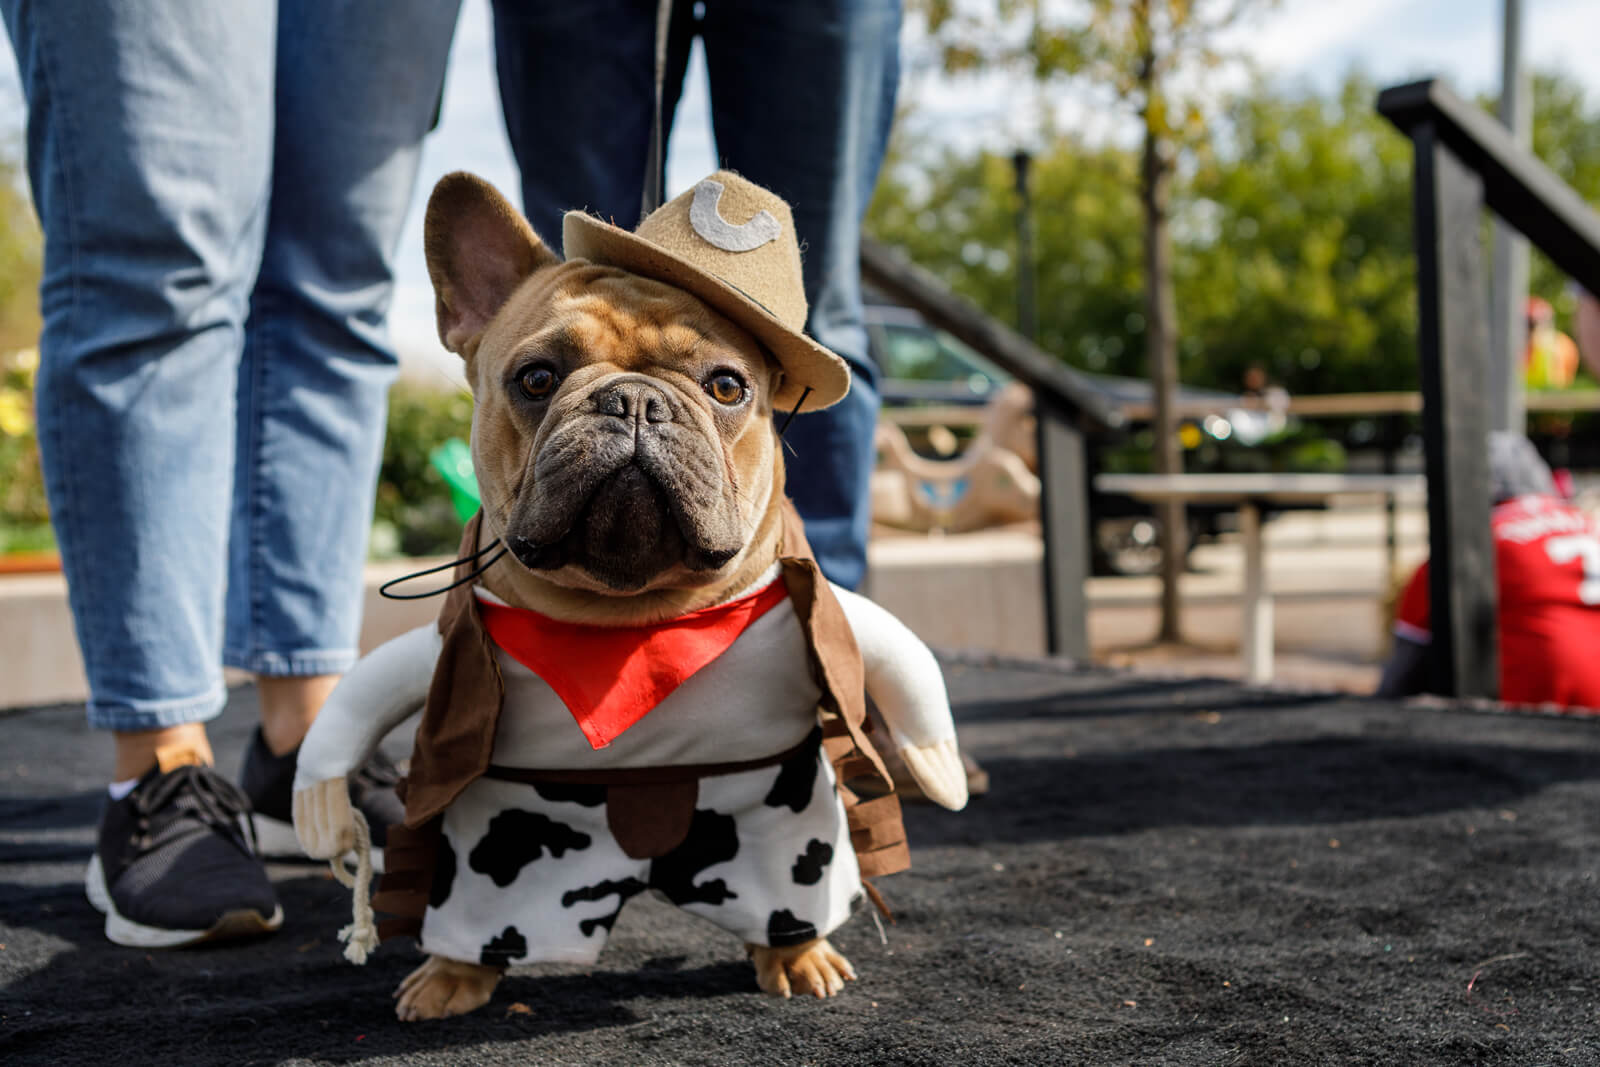 Dog dressed as cowboy at Halloween event